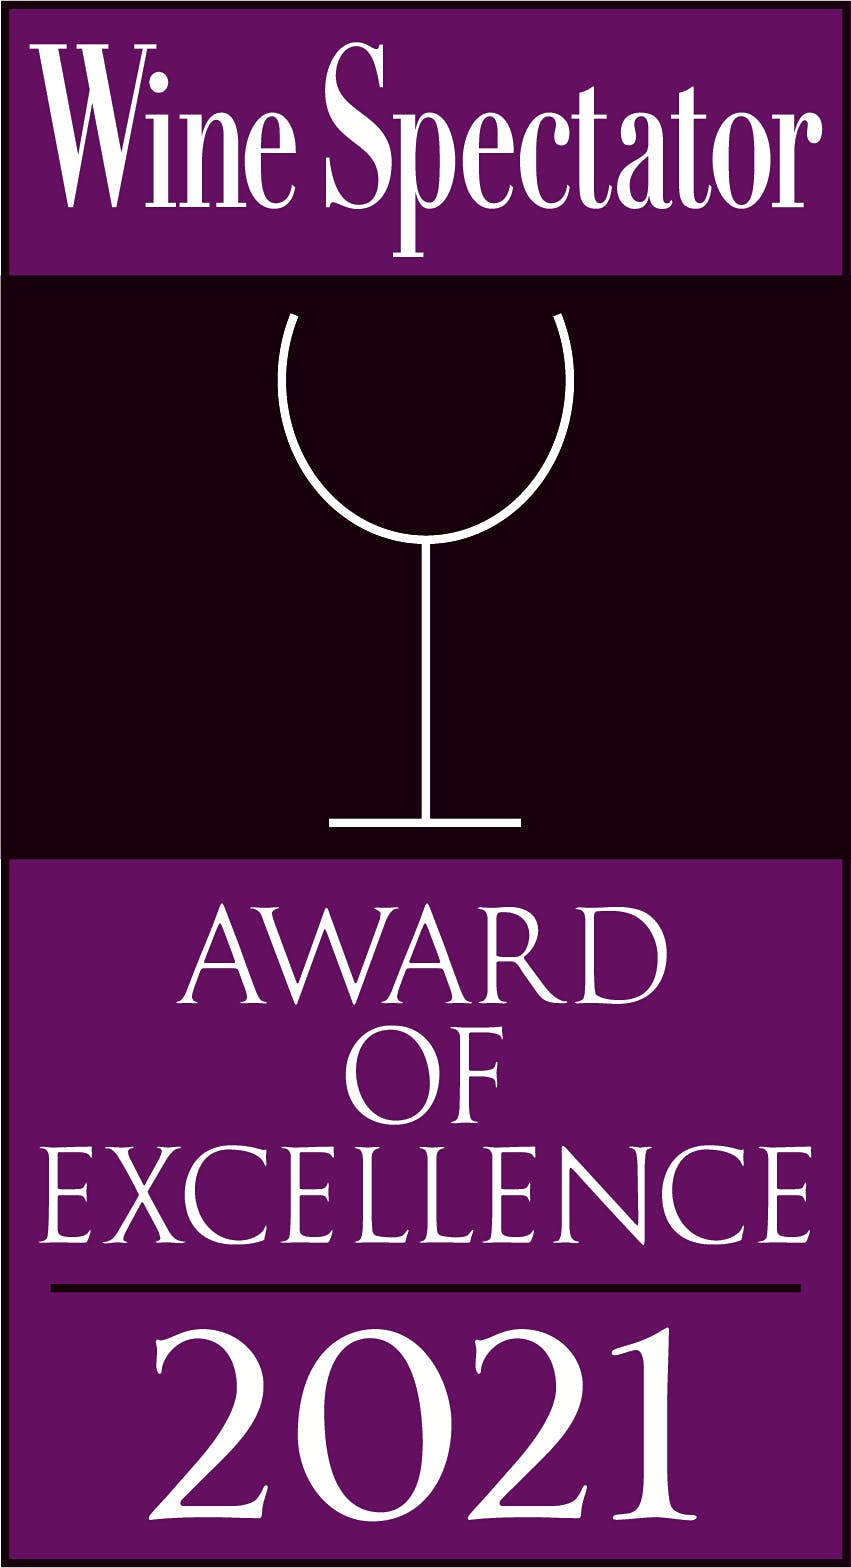 Wine Spectator Award of Excellence 2021